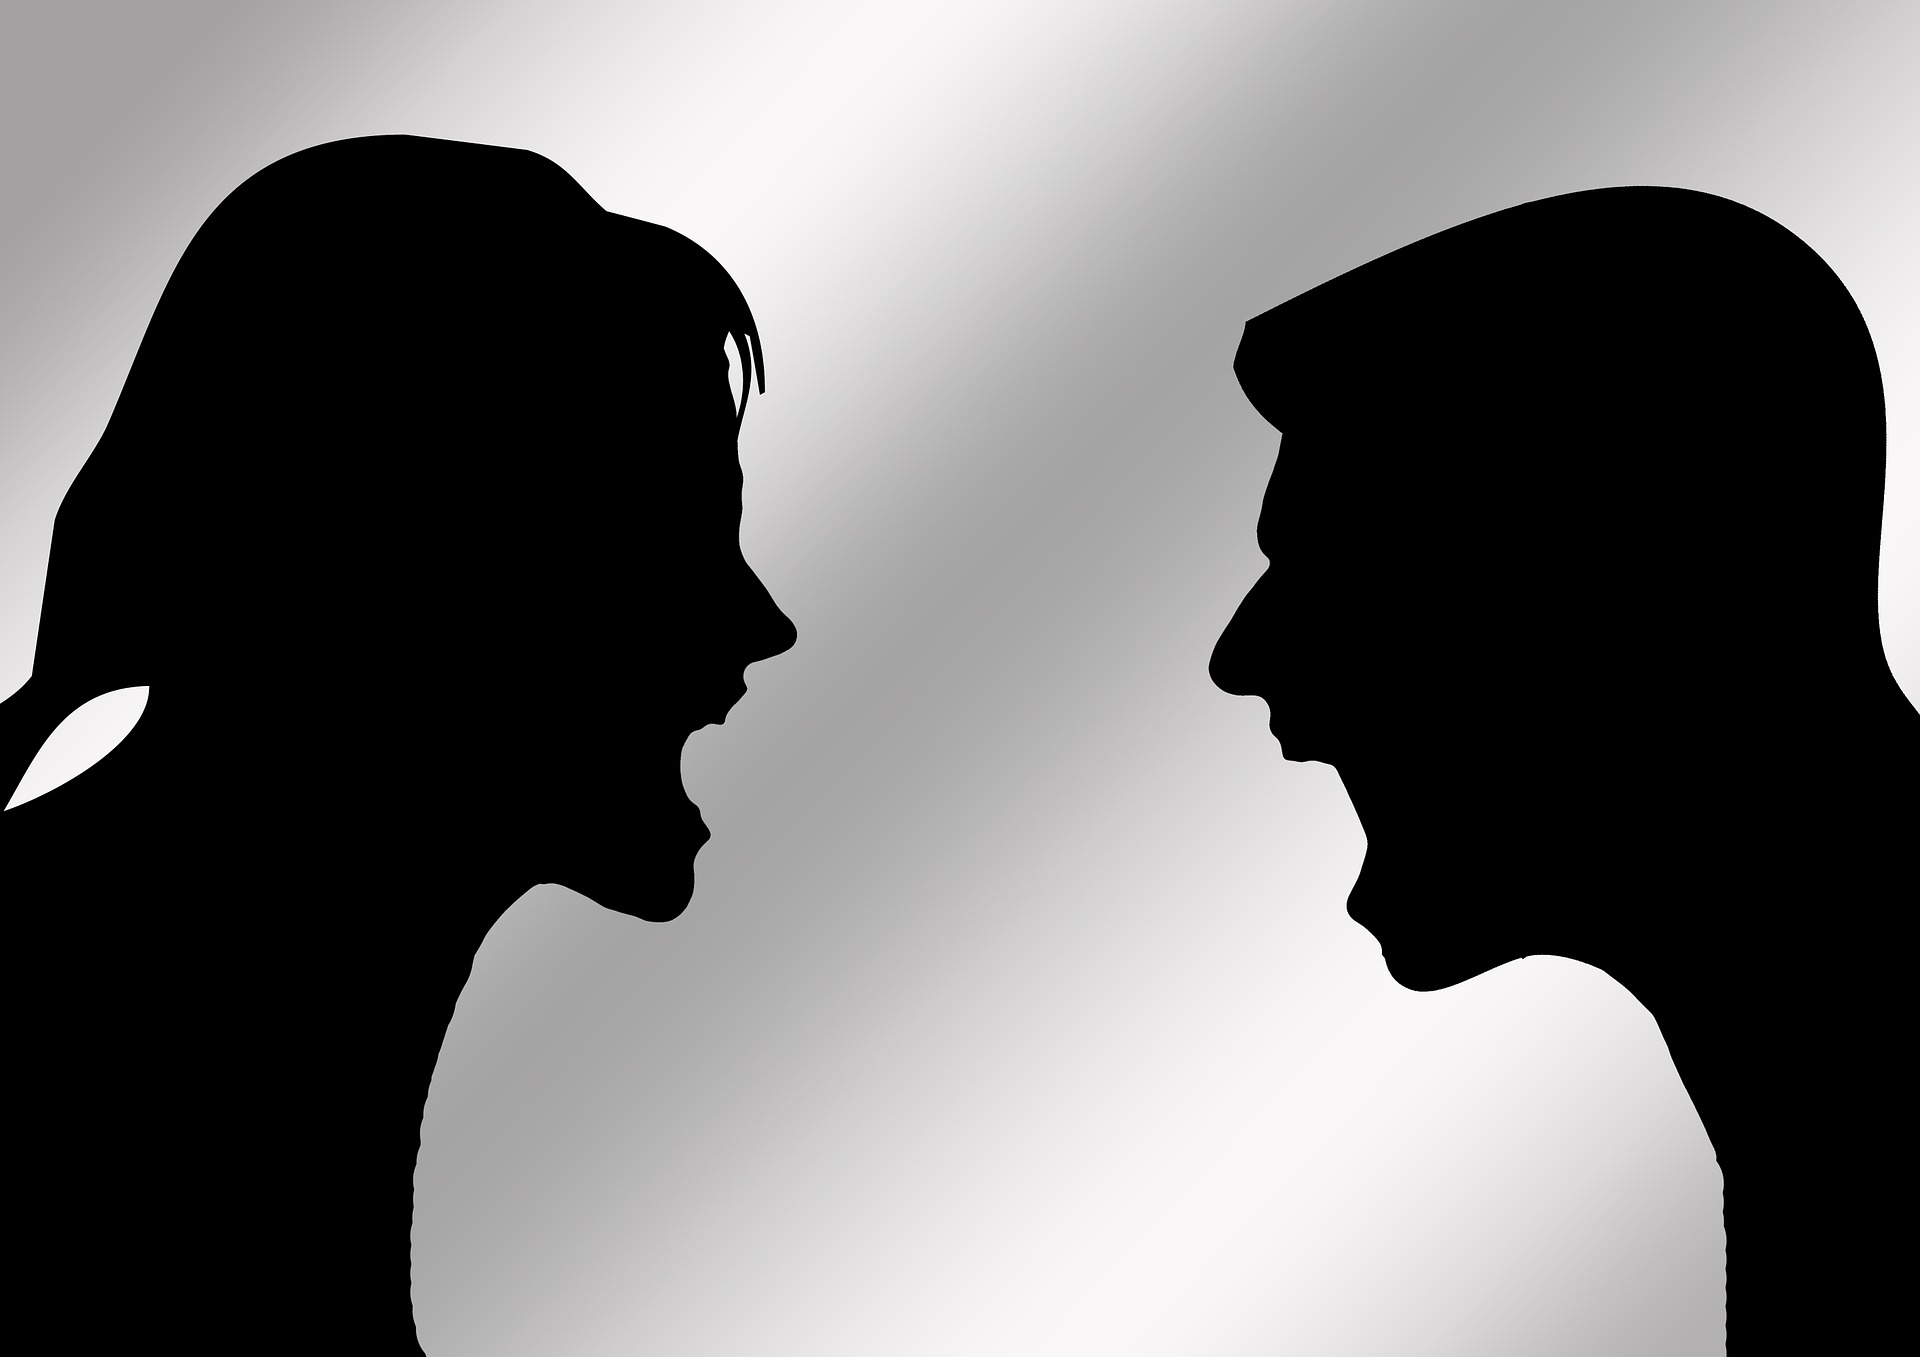 high conflict relationship from man and woman arguing with each other